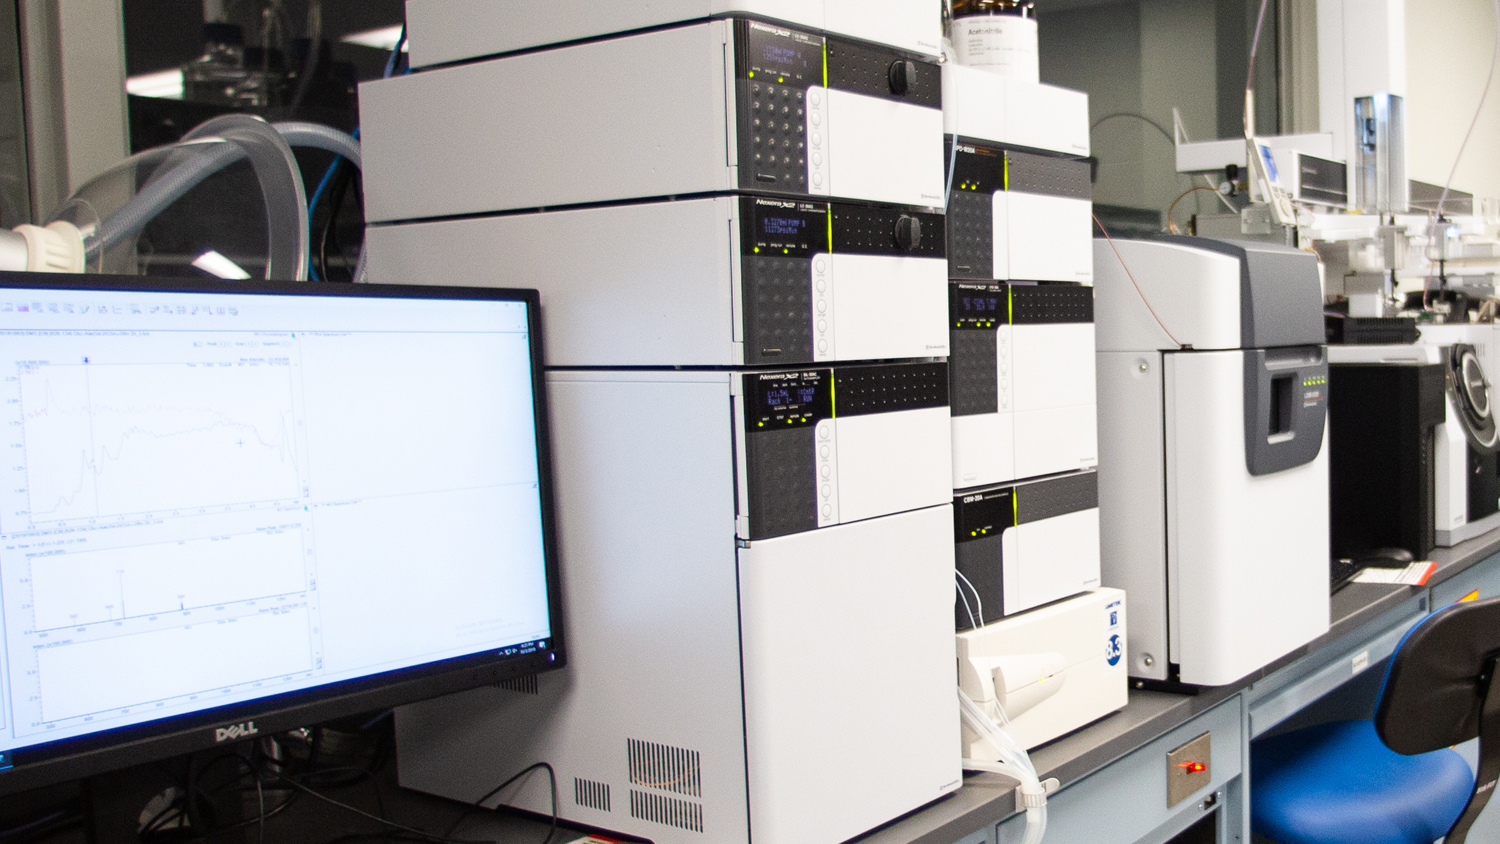 instruments in chemical analysis laboratory